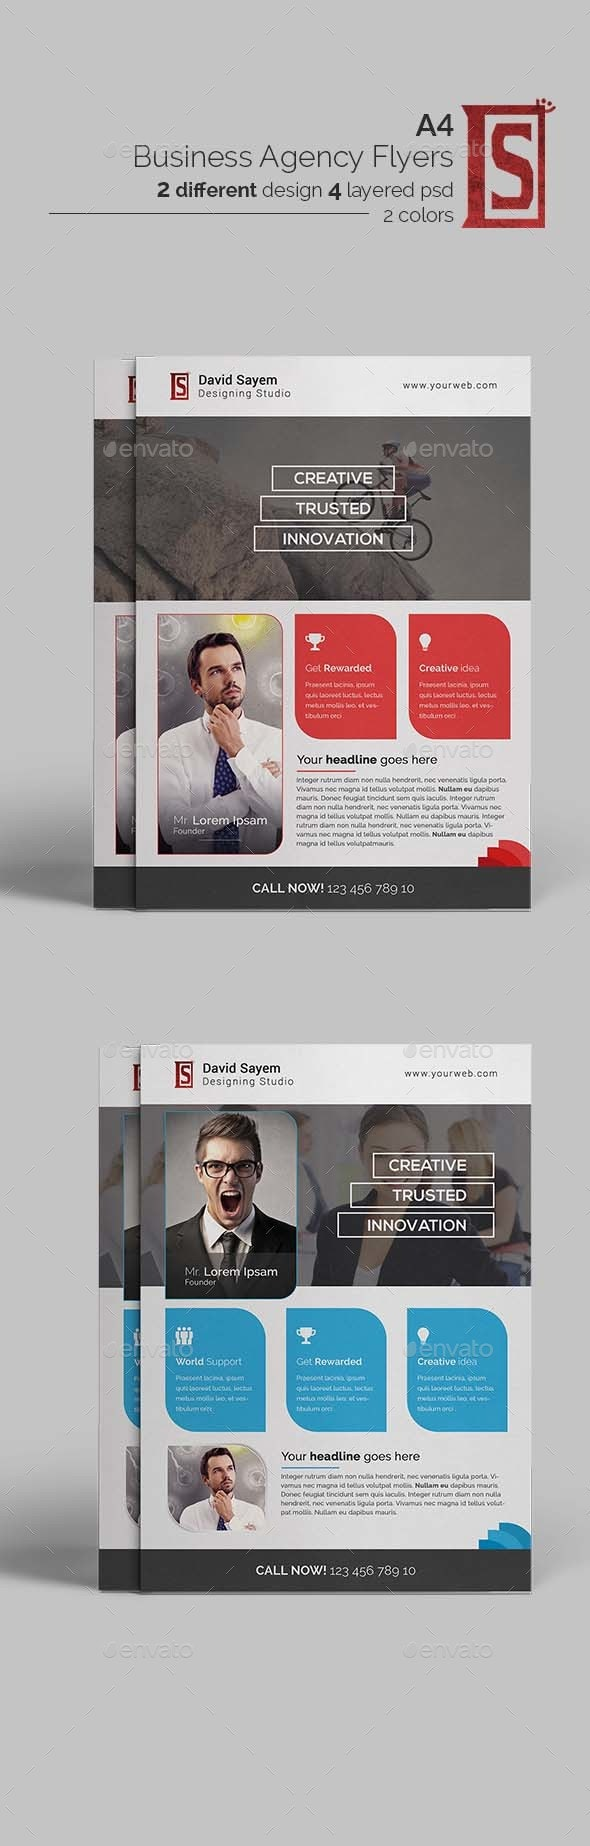 Modern Business Agency Flyer/Poster Tmplate - Corporate Flyers